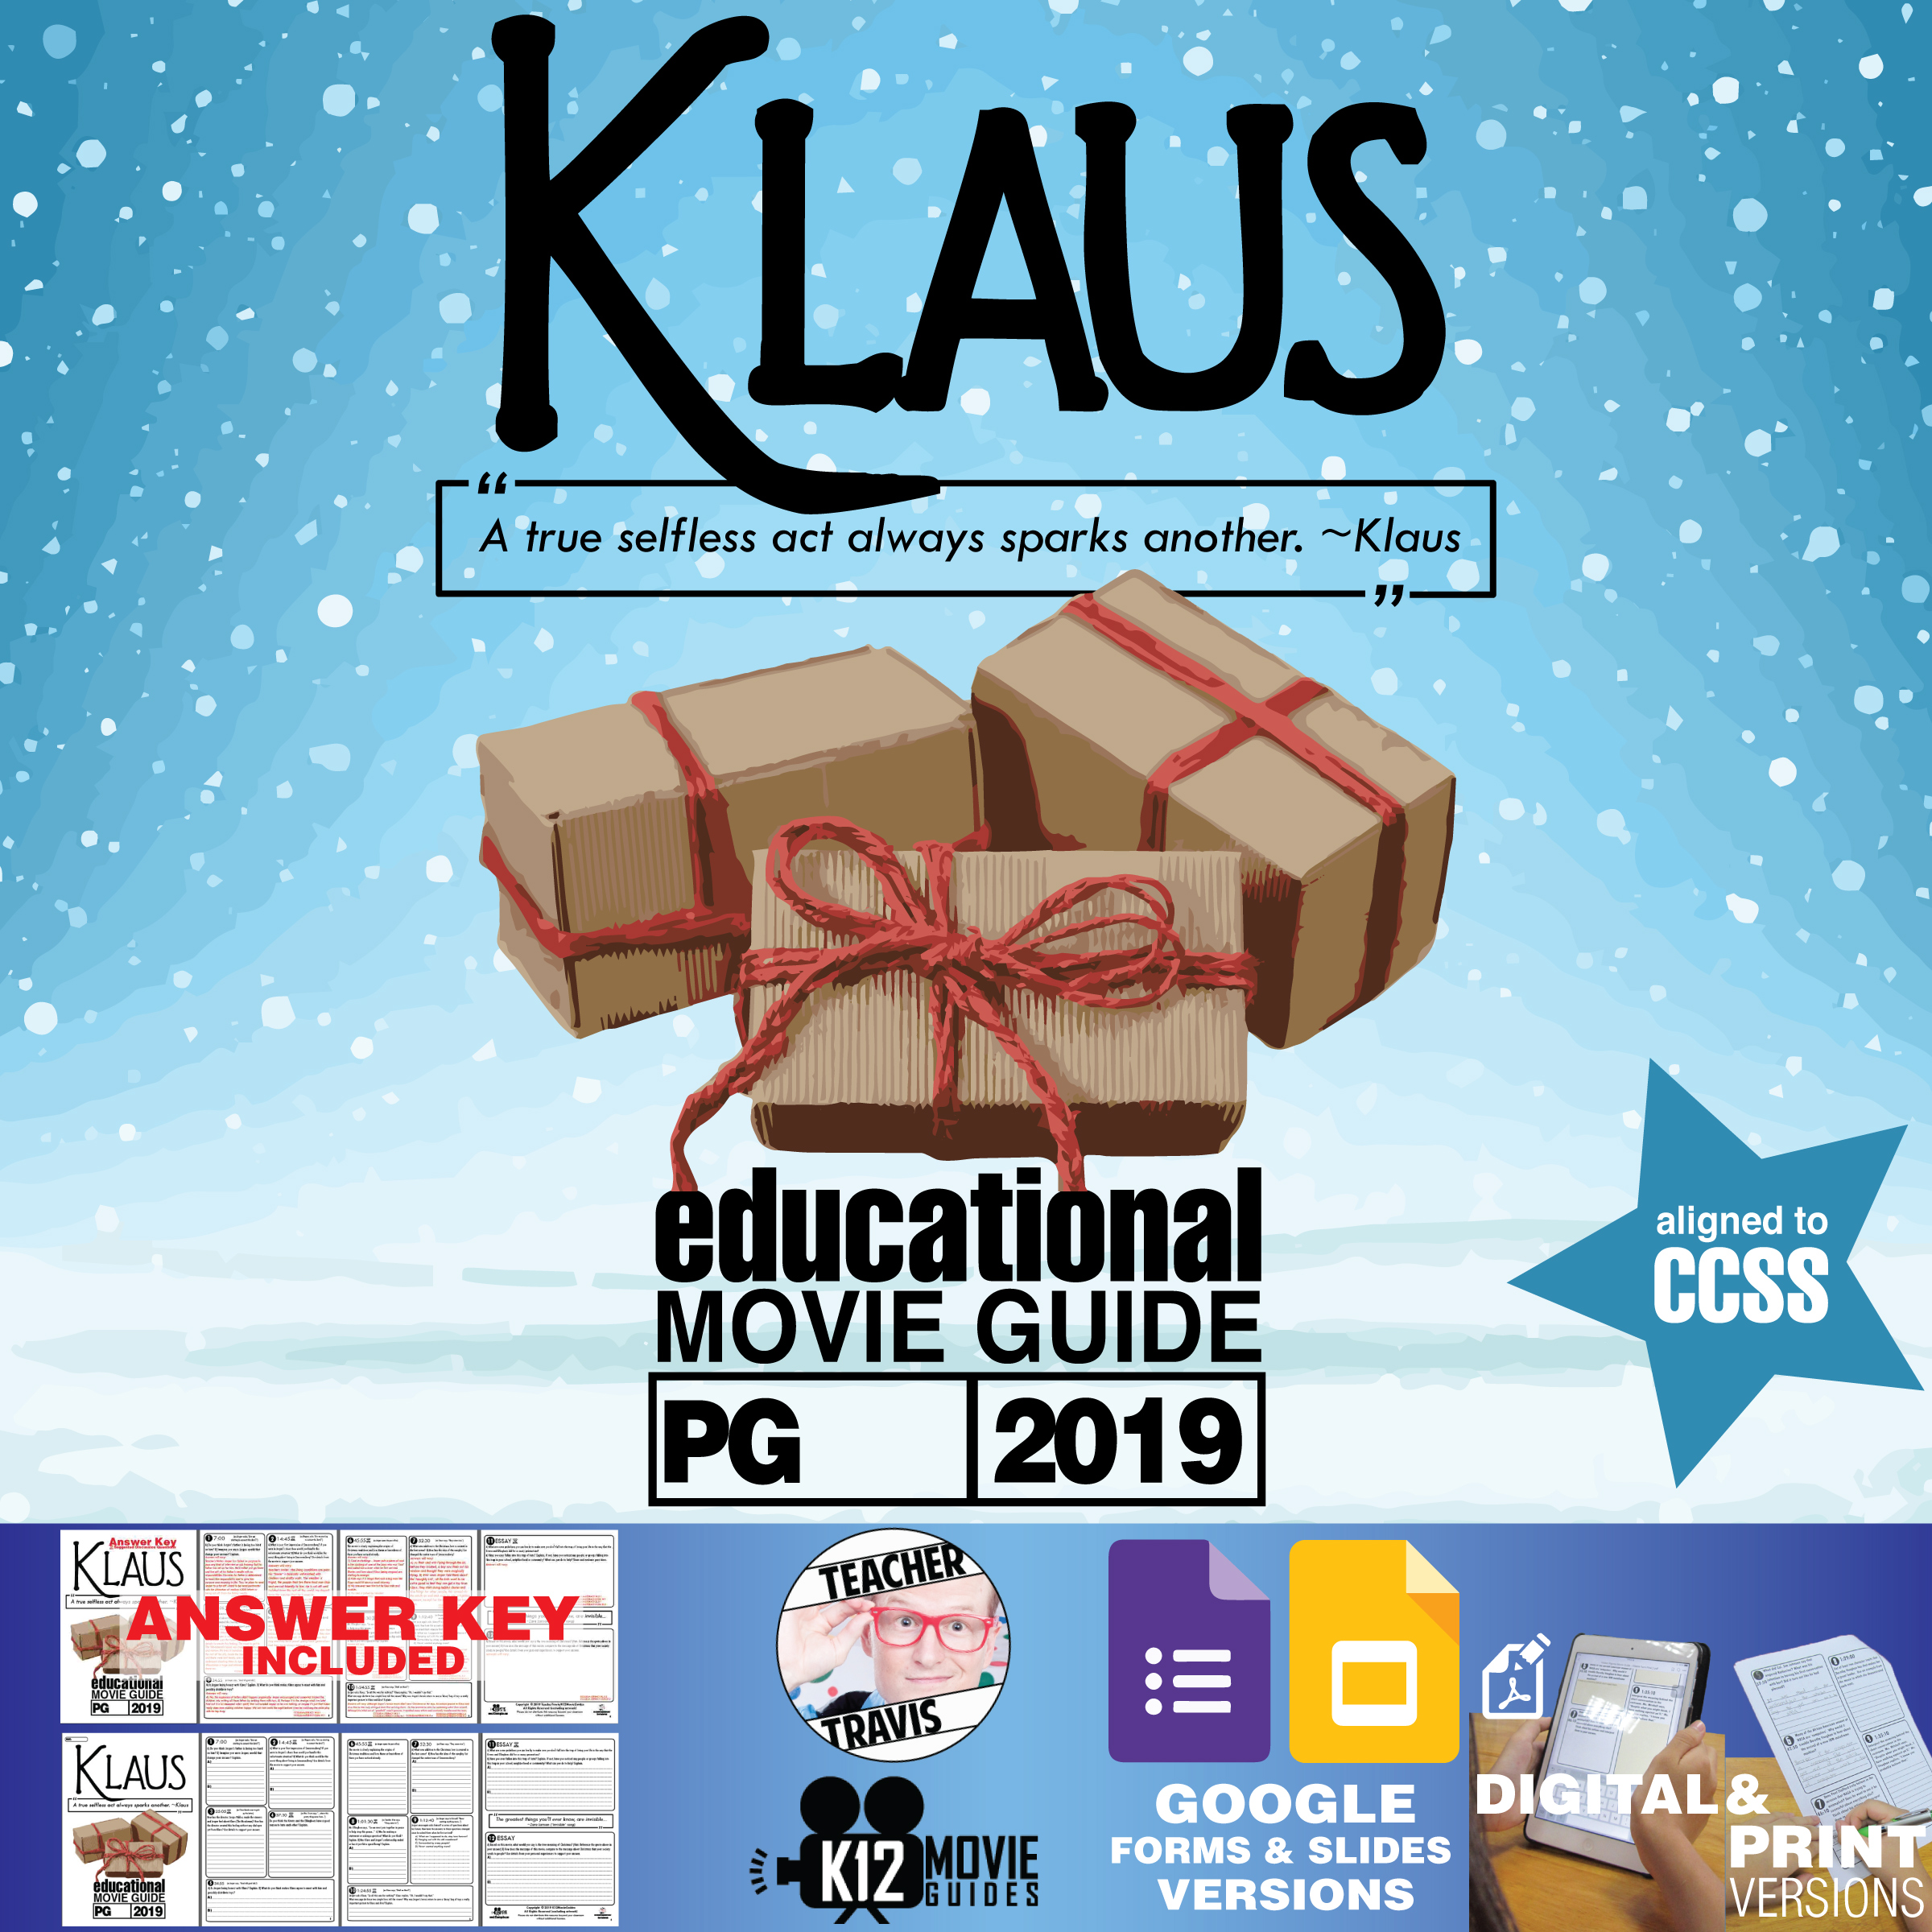 Klaus Movie Guide | Questions (PG - 2019) Cover